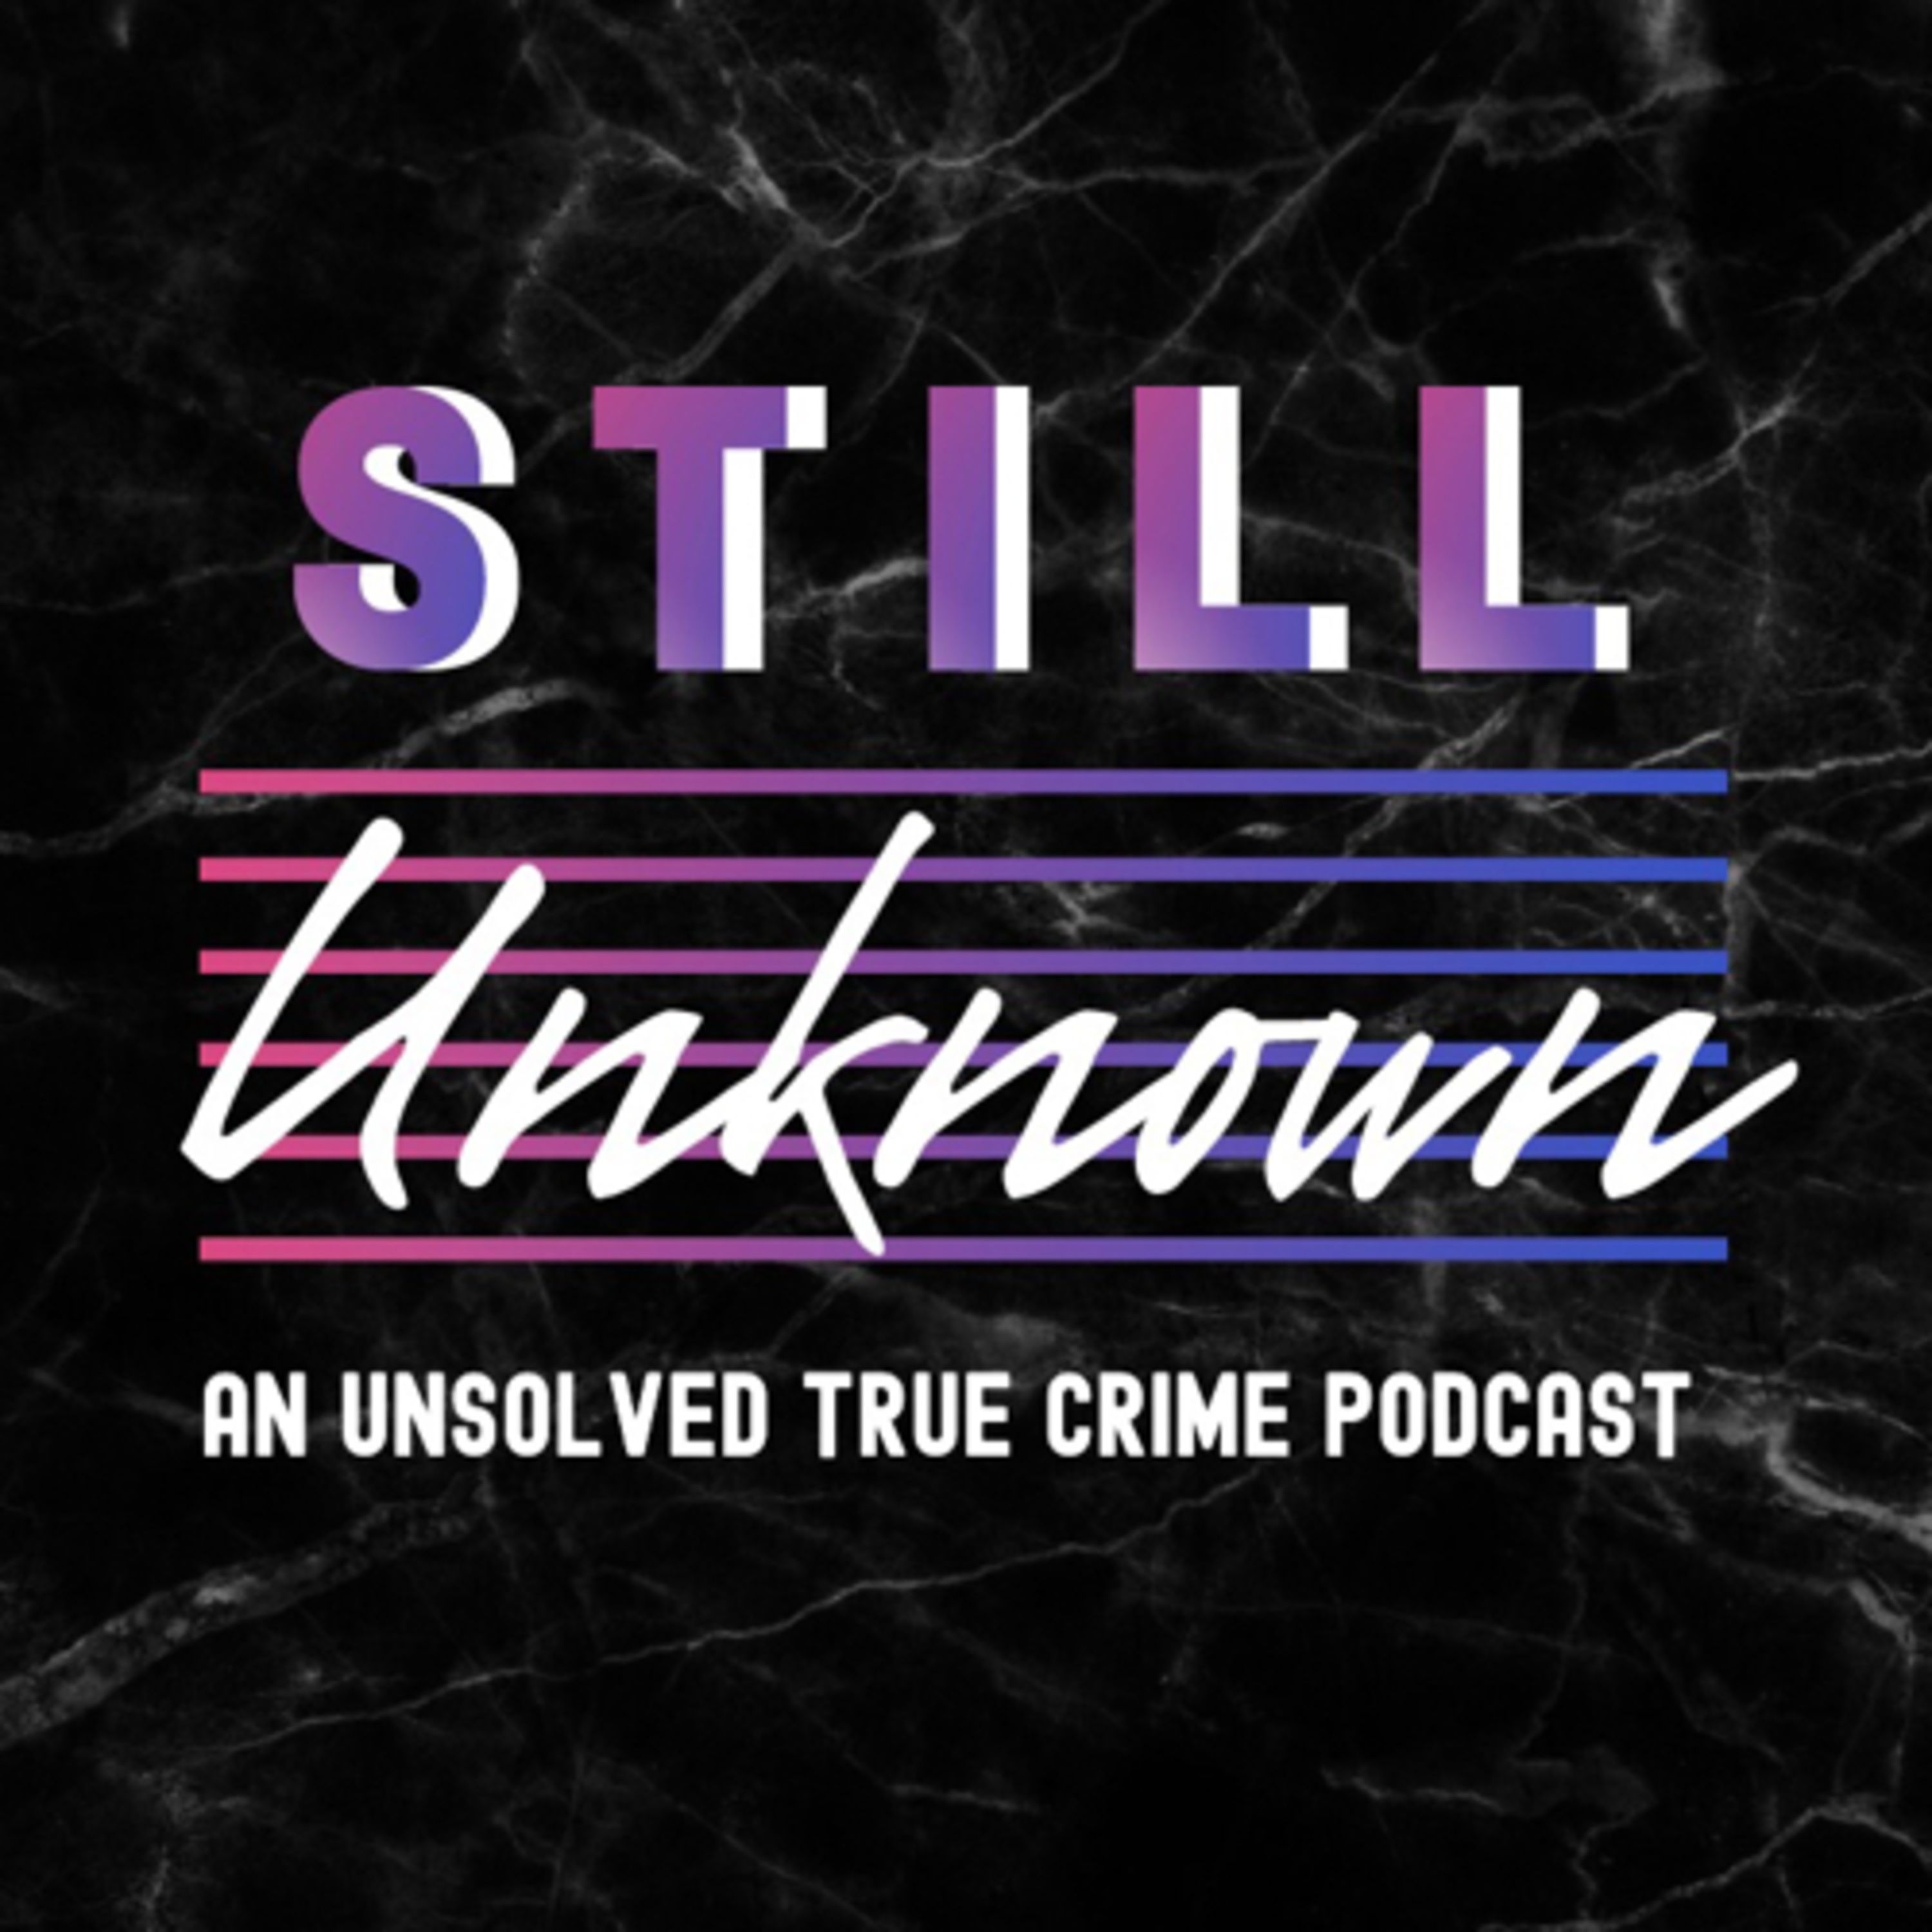 Still Unknown: An Unsolved True Crime Podcast